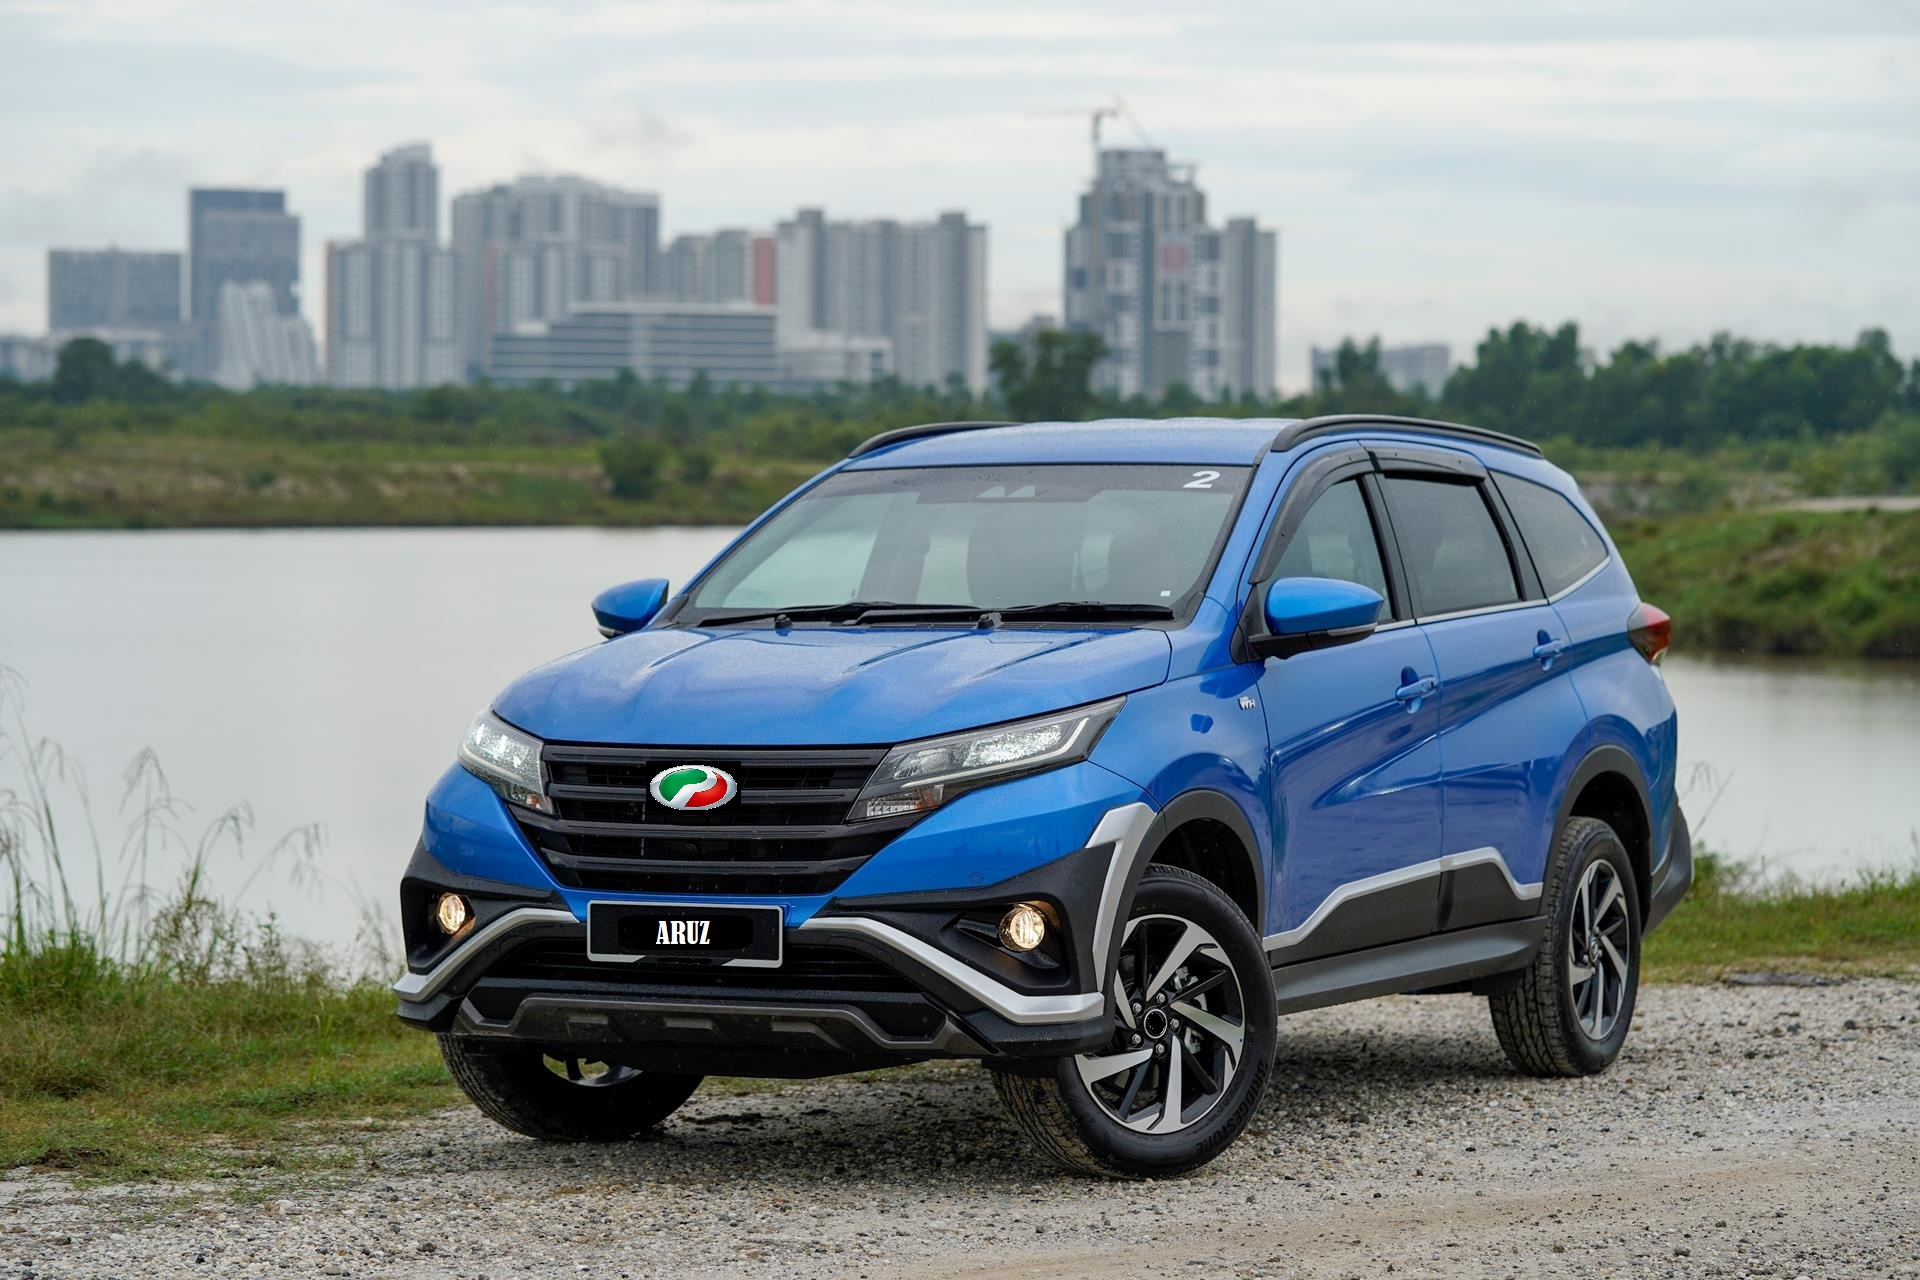 perodua s suv just might have a rush for cannibalism in its appetite